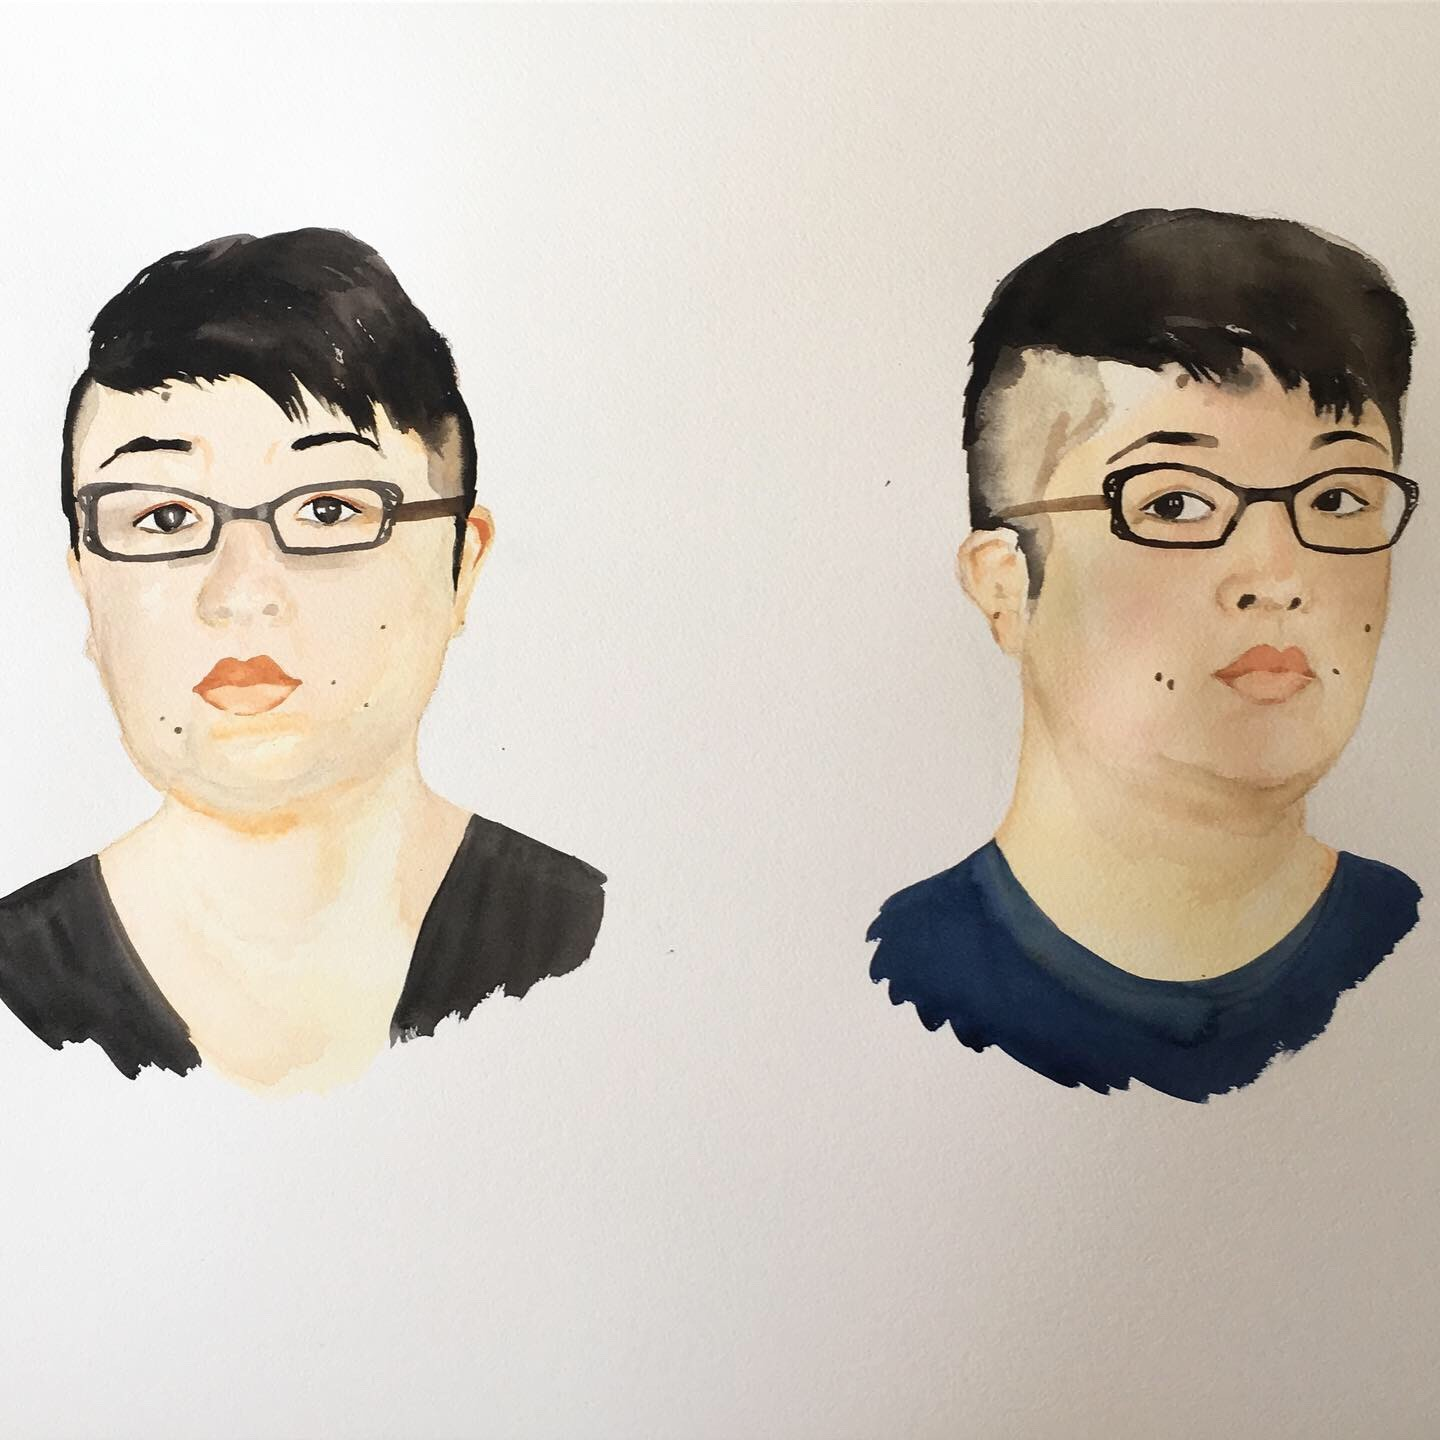 Double watercolor self-portrait of an Asian woman with very short hair and glasses